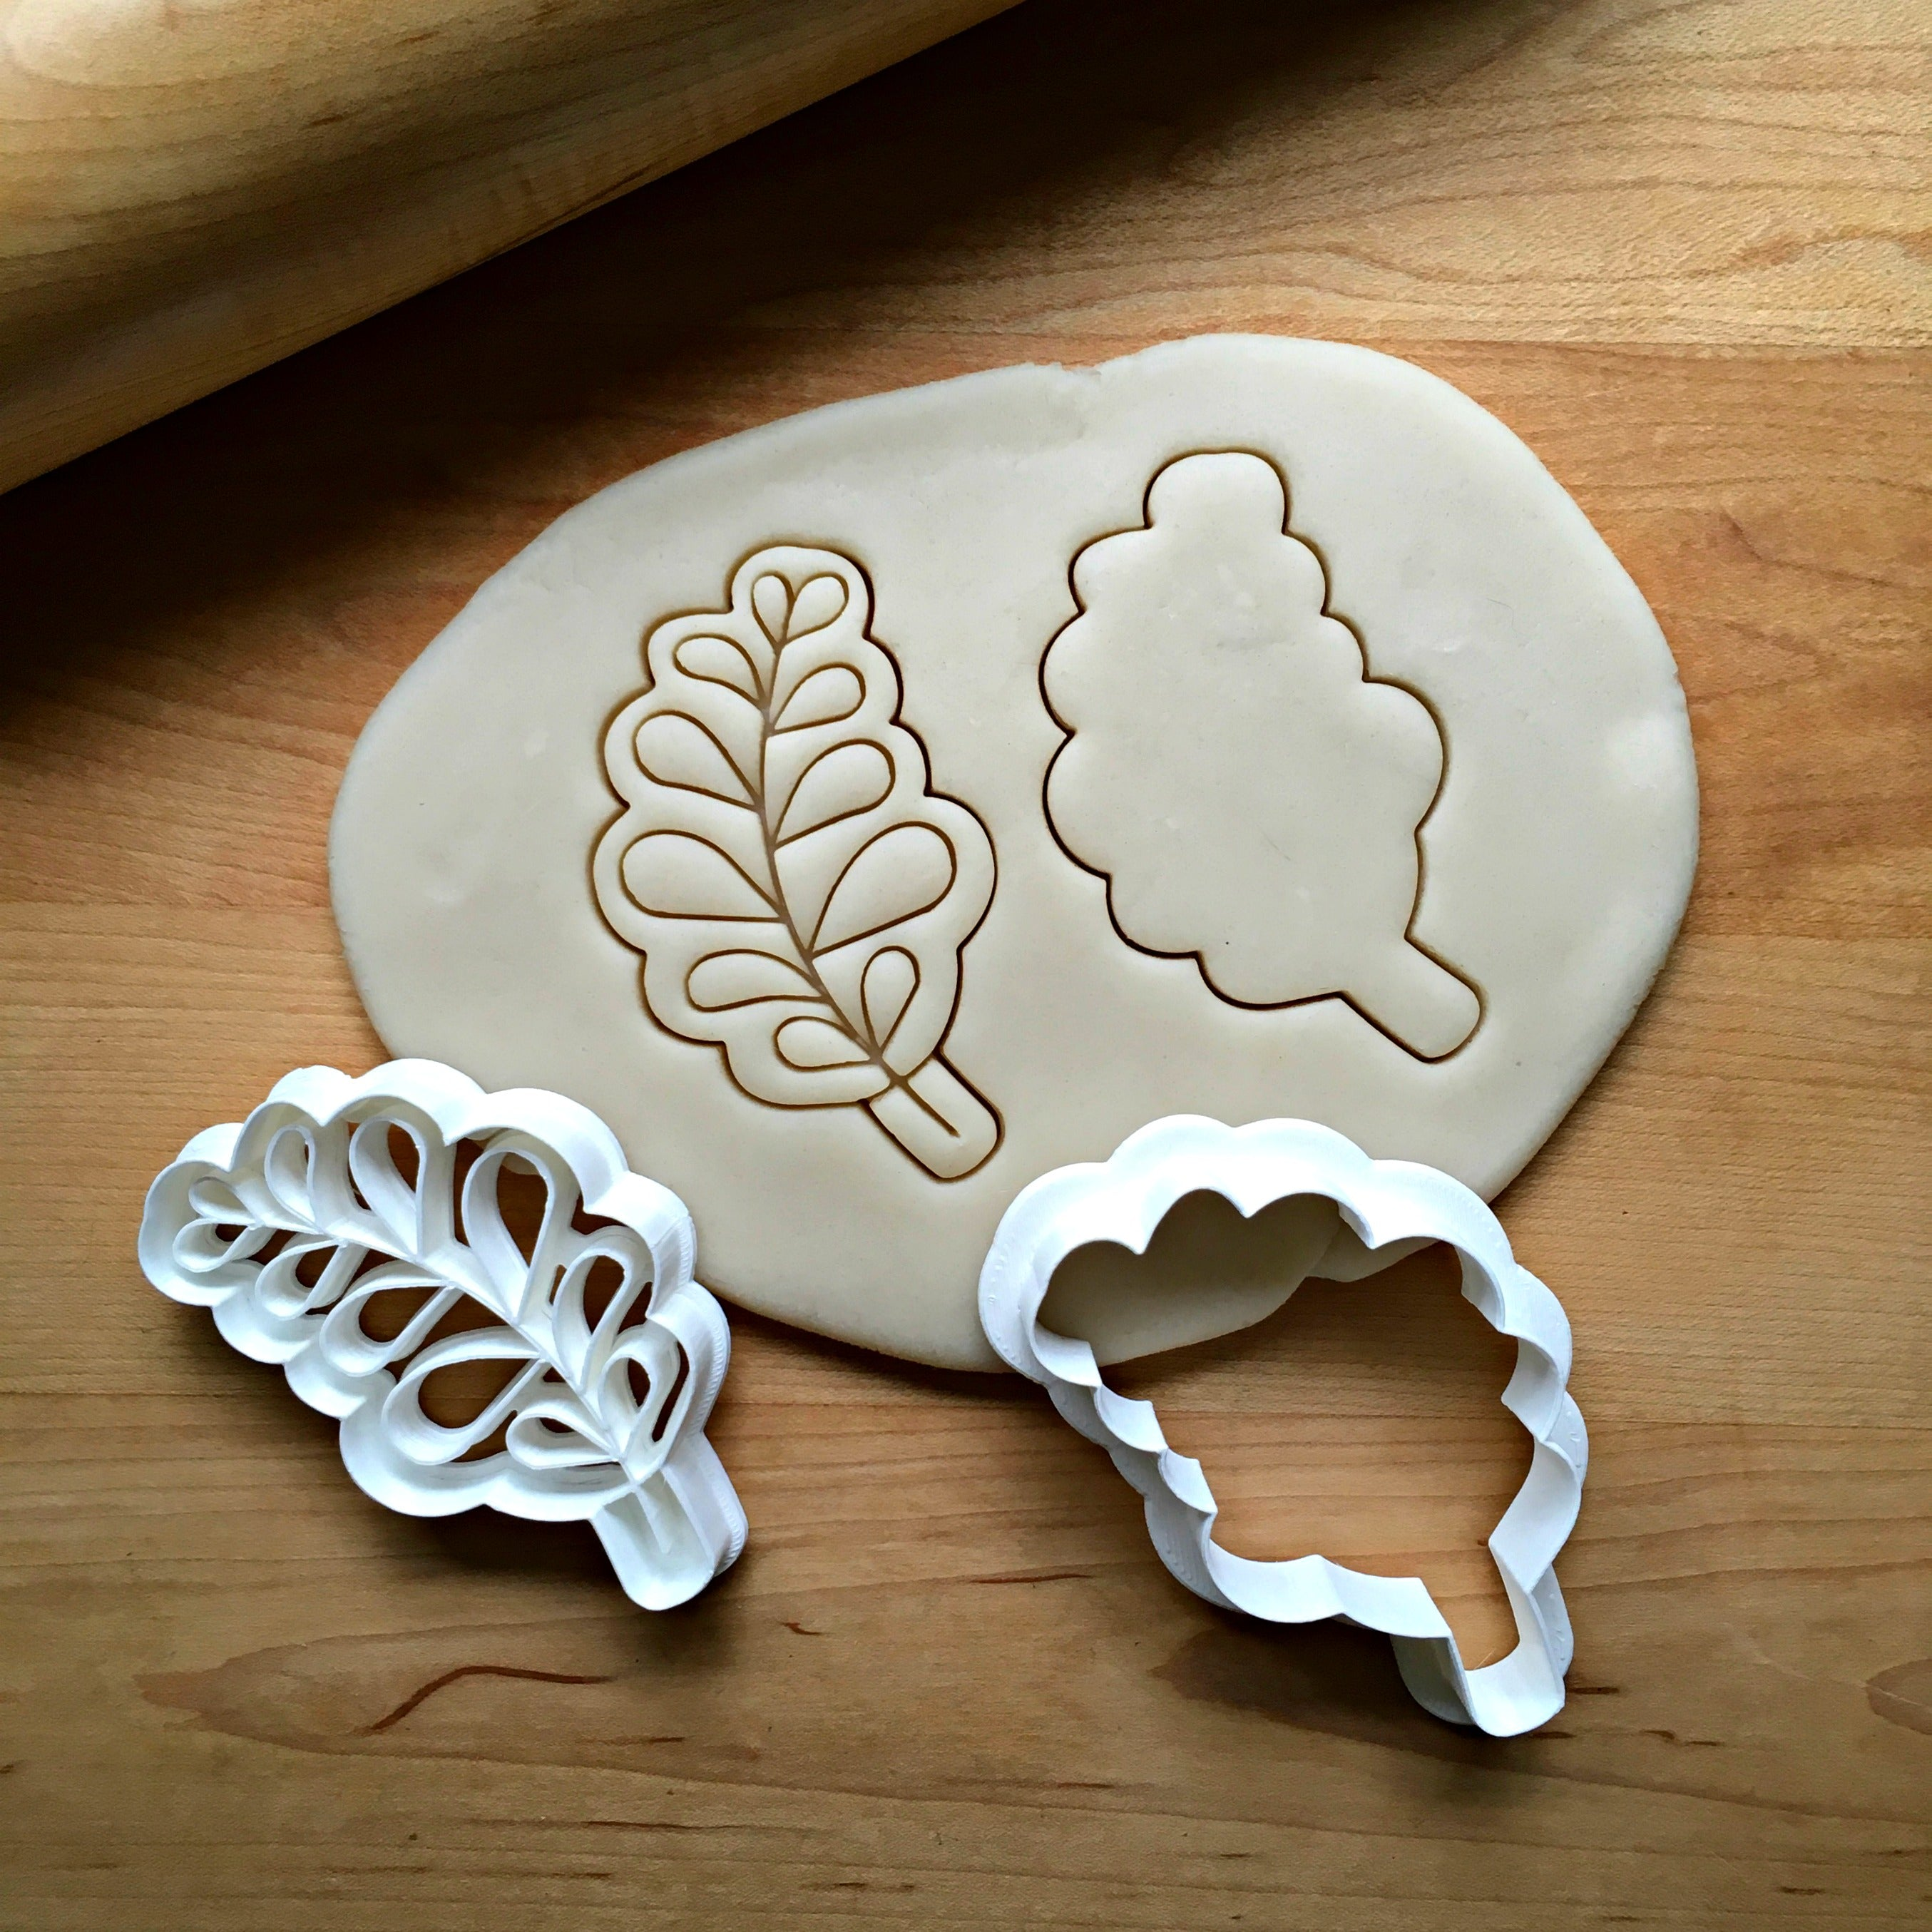 Set of 2 Rounded Leaf Cookie Cutters/Dishwasher Safe